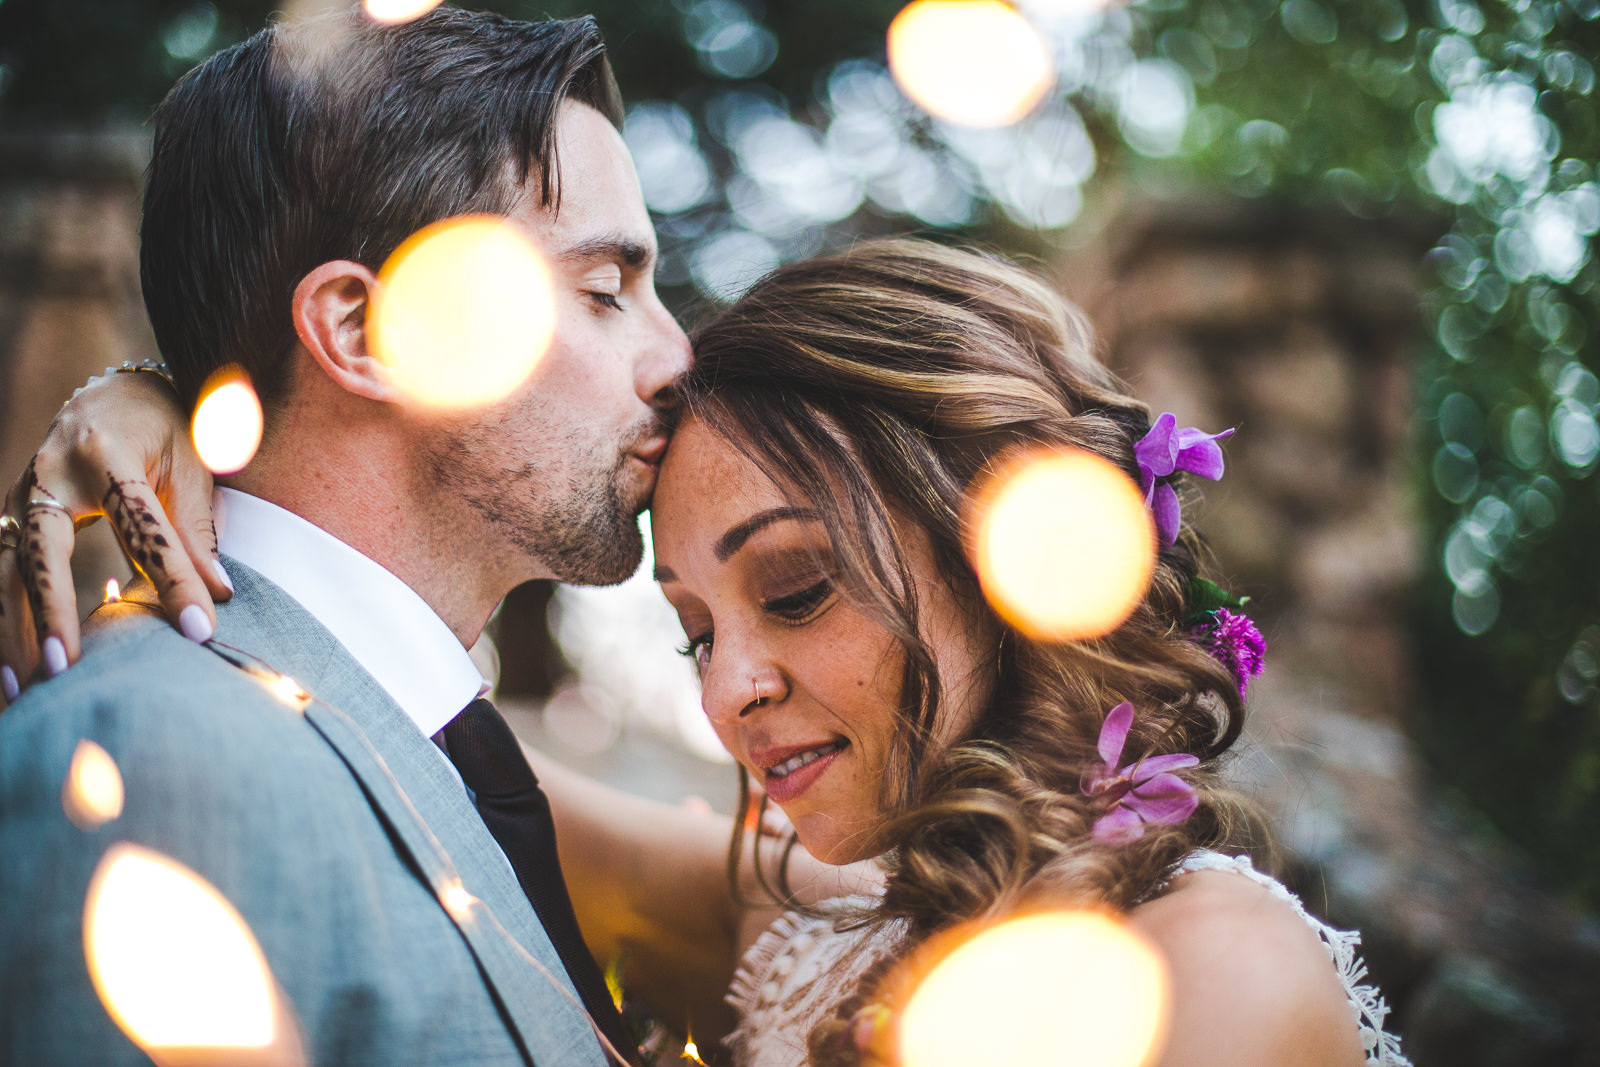 Groom kisses his bride on the forehead with small small white lights surrounding them